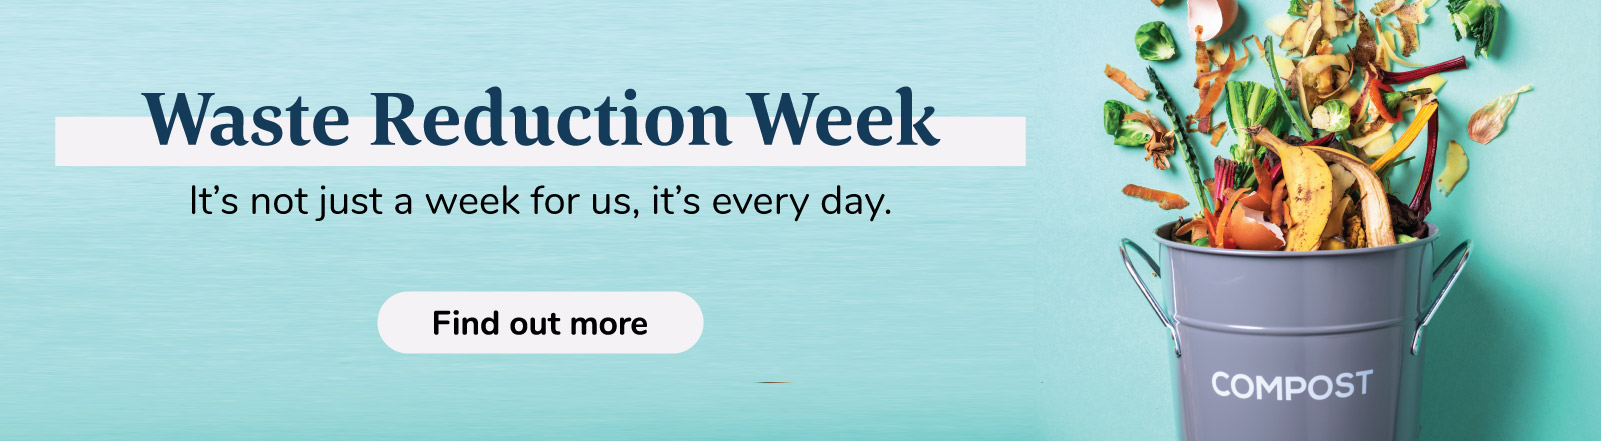 Waste Reduction Week. It's not just a week for us, it's every day.